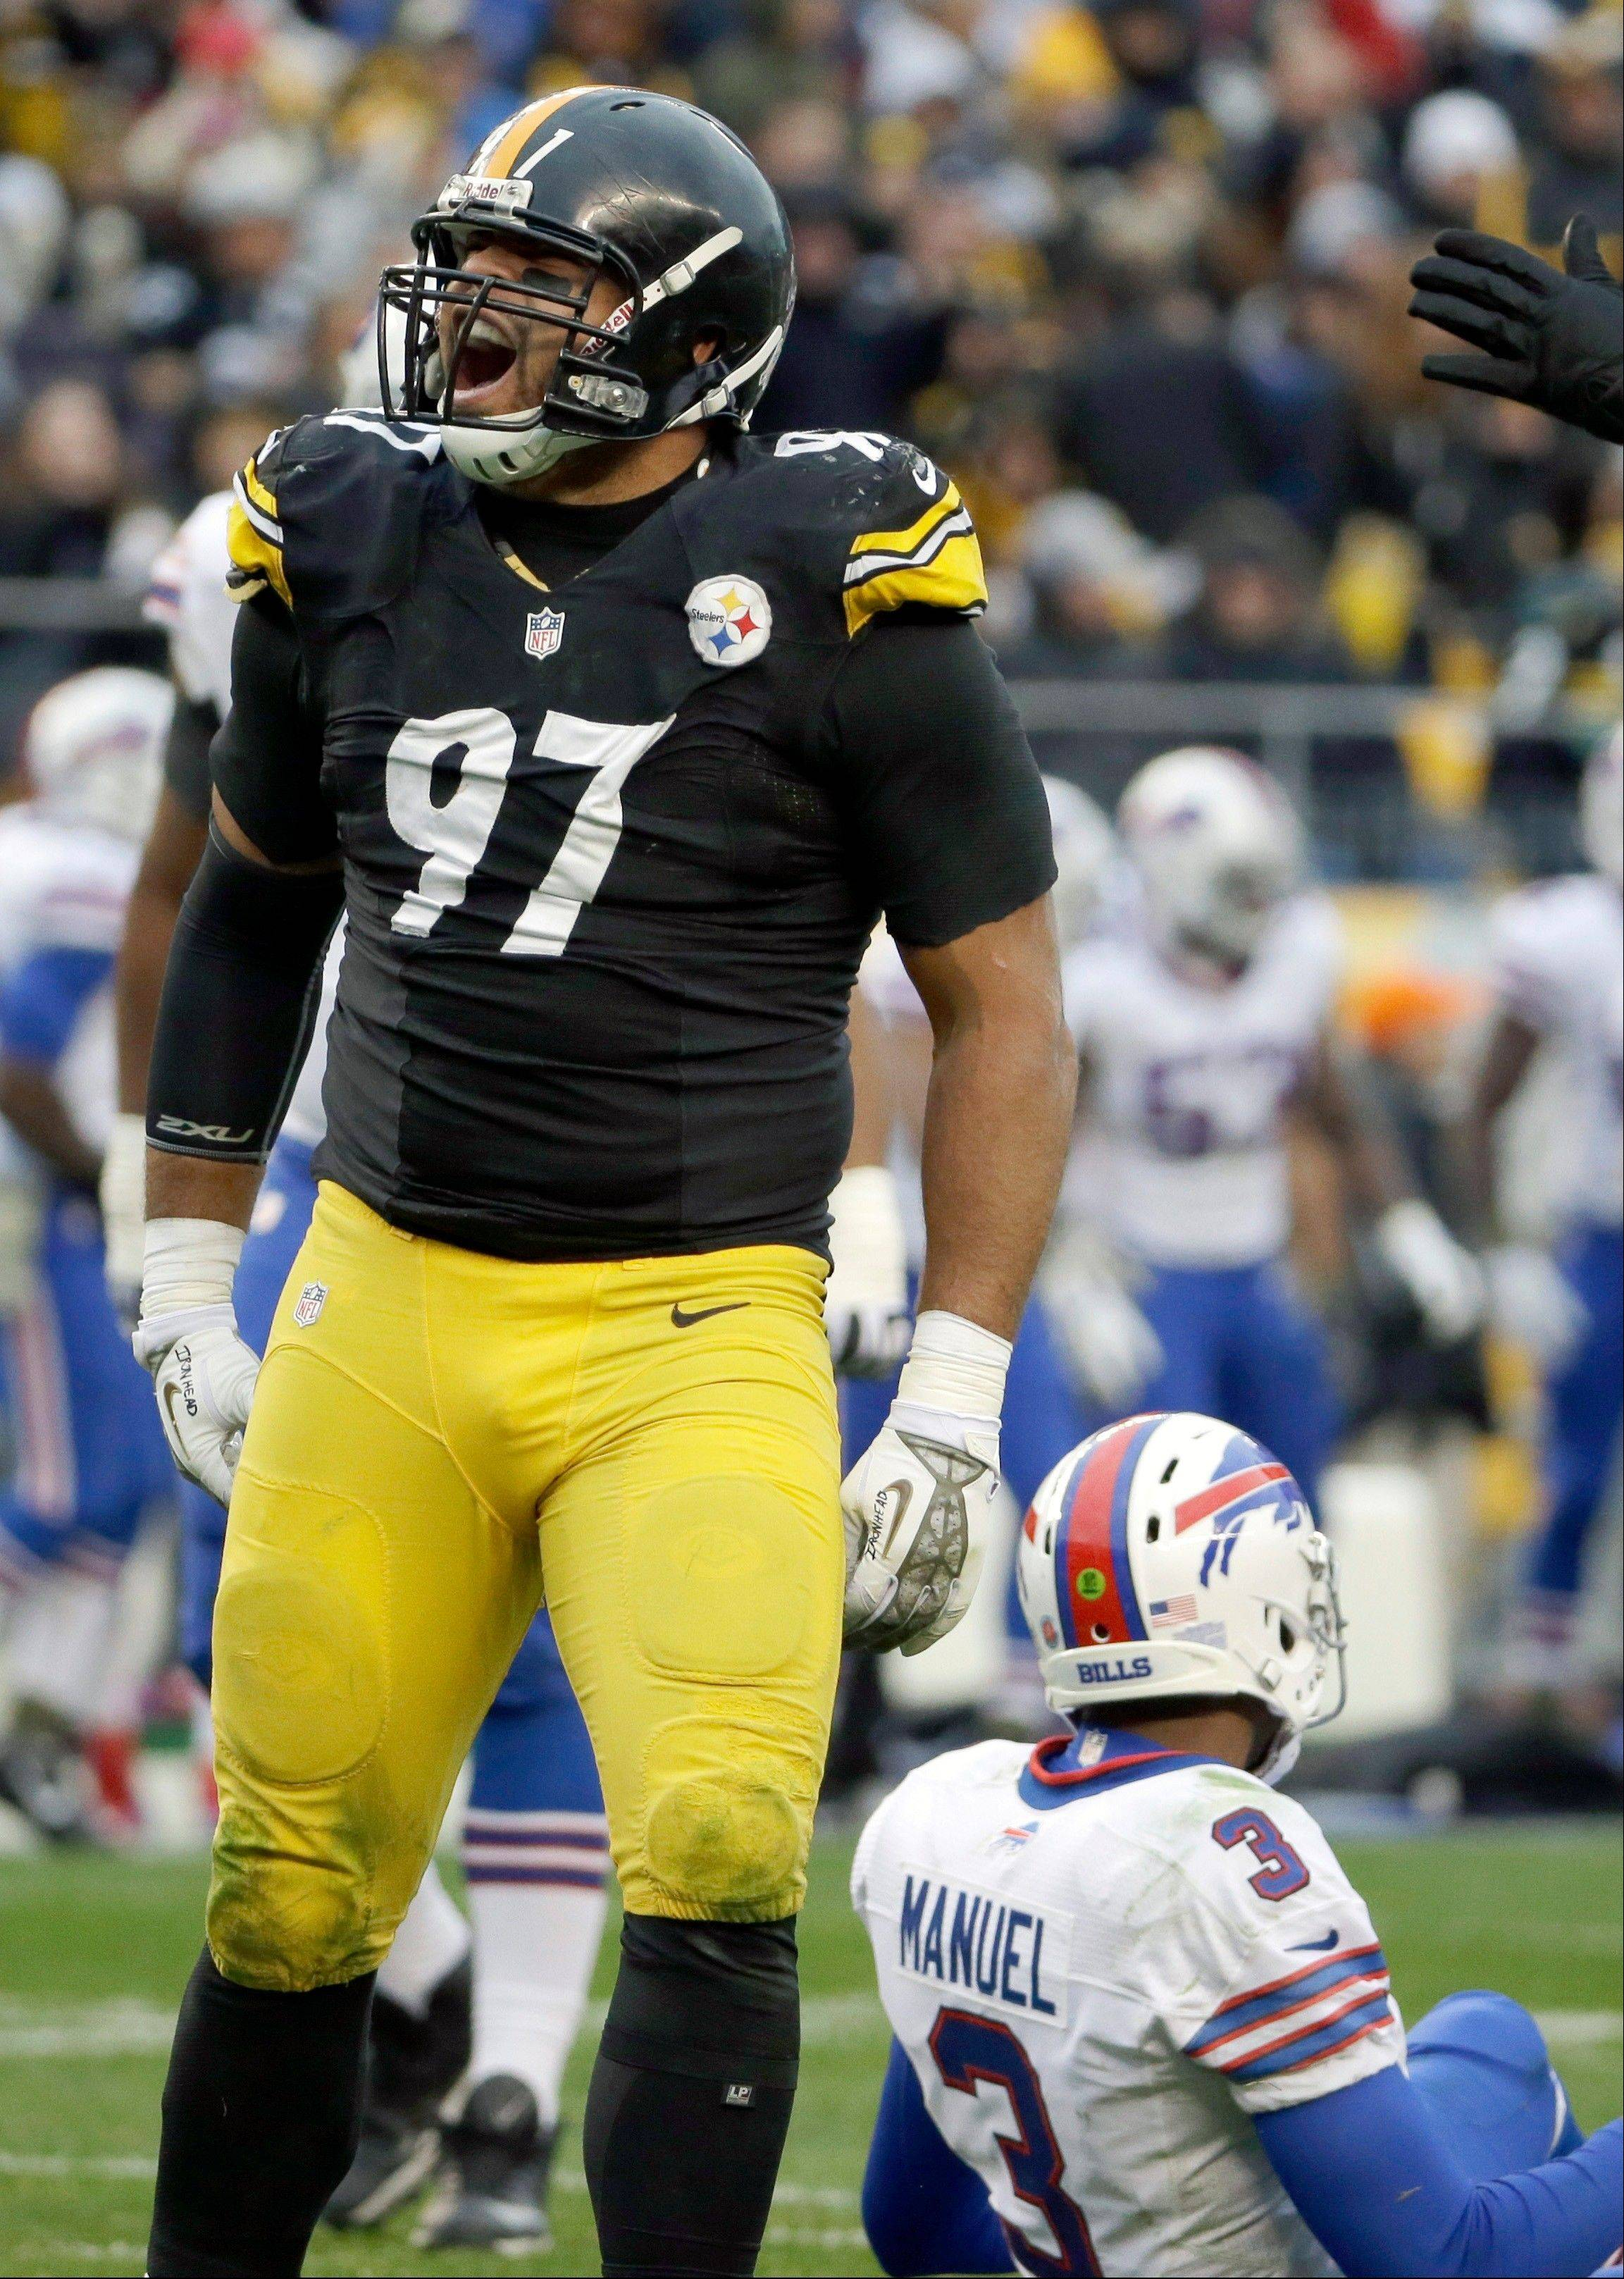 Pittsburgh Steelers� Cameron Heyward, left, reacts after tackling Buffalo Bills� EJ Manuel during the second half of an NFL football game on Sunday, Nov. 10, 2013, in Pittsburgh.